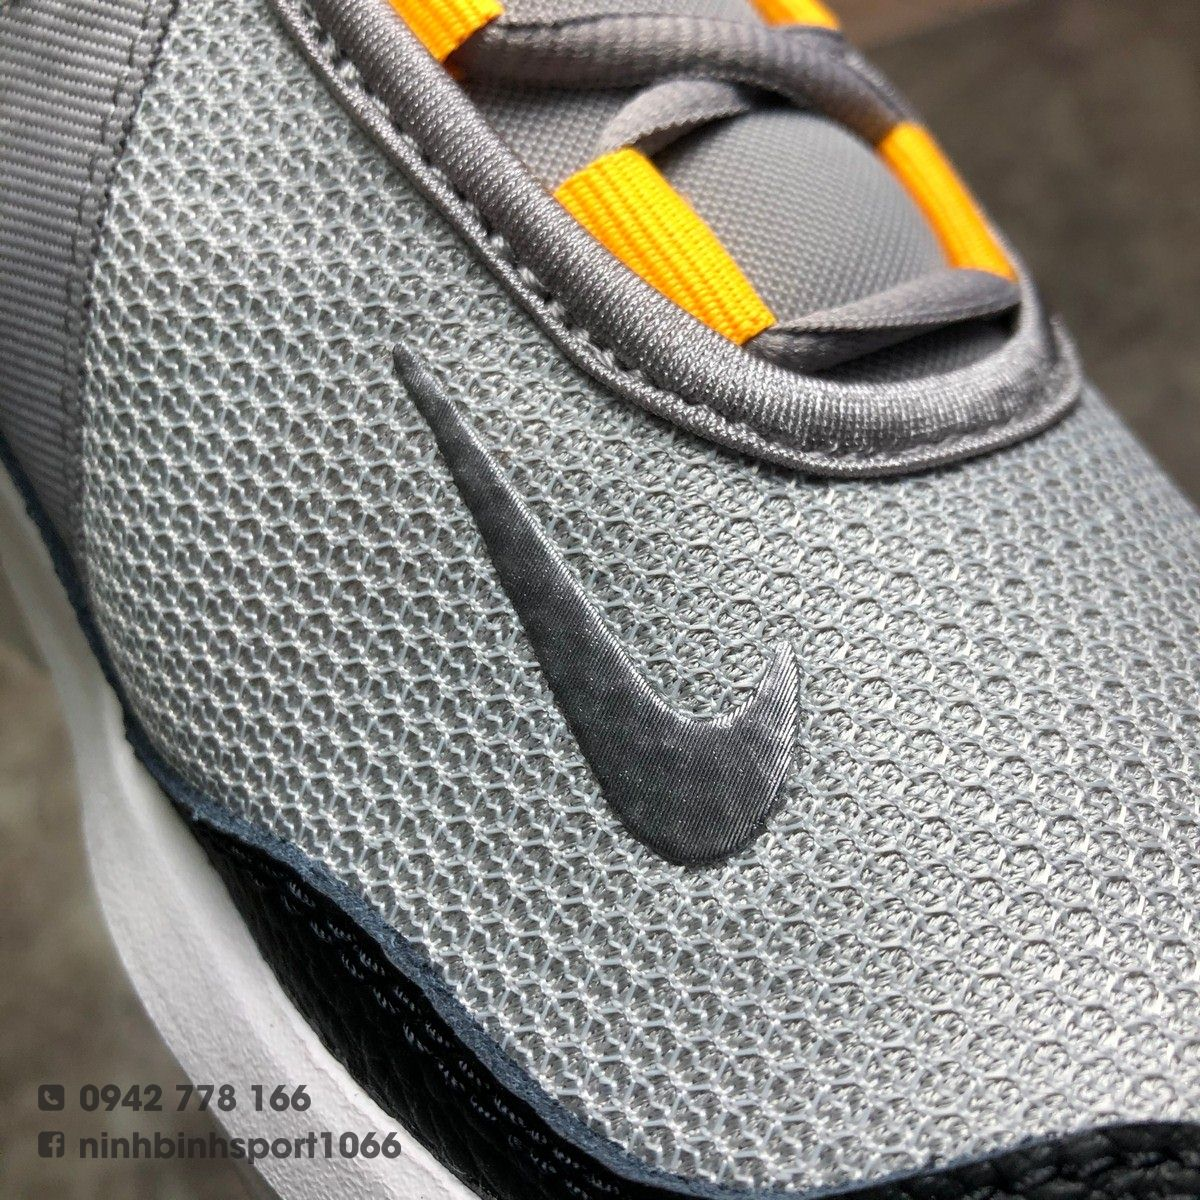 Giầy thể thao nam Nike Air Max Alpha Trainer 2 AT1237-002